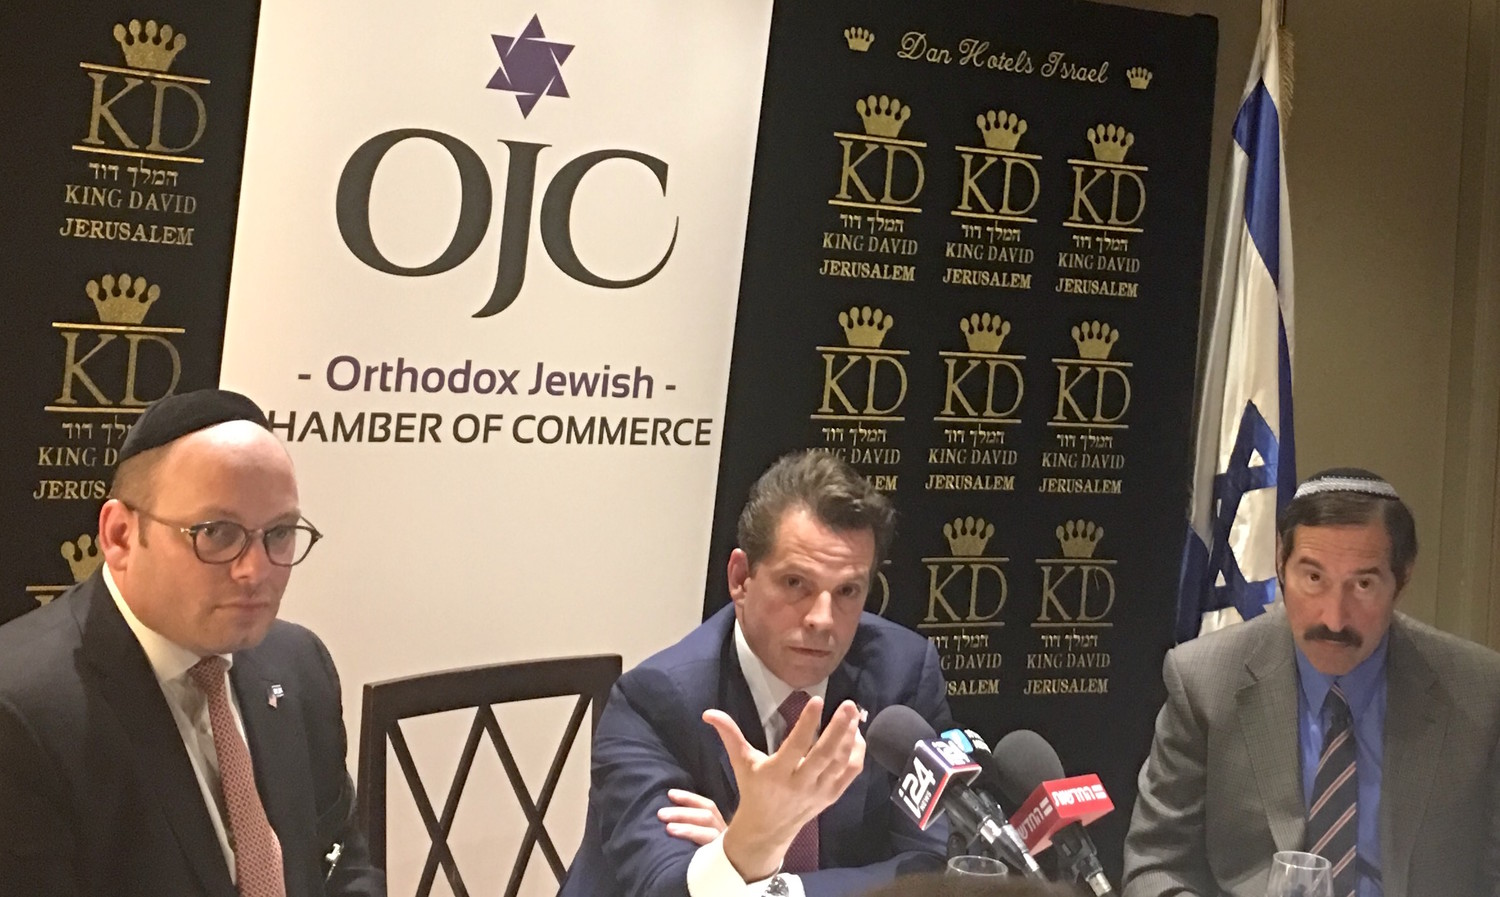 Anthony Scaramucci is flanked by Orthodox Jewish Chamber of Commerce founder and CEO Duvi Honig (left) and Executive VP Dr. Joseph Frager, at the King David Hotel in Jerusalem on Nov. 21.